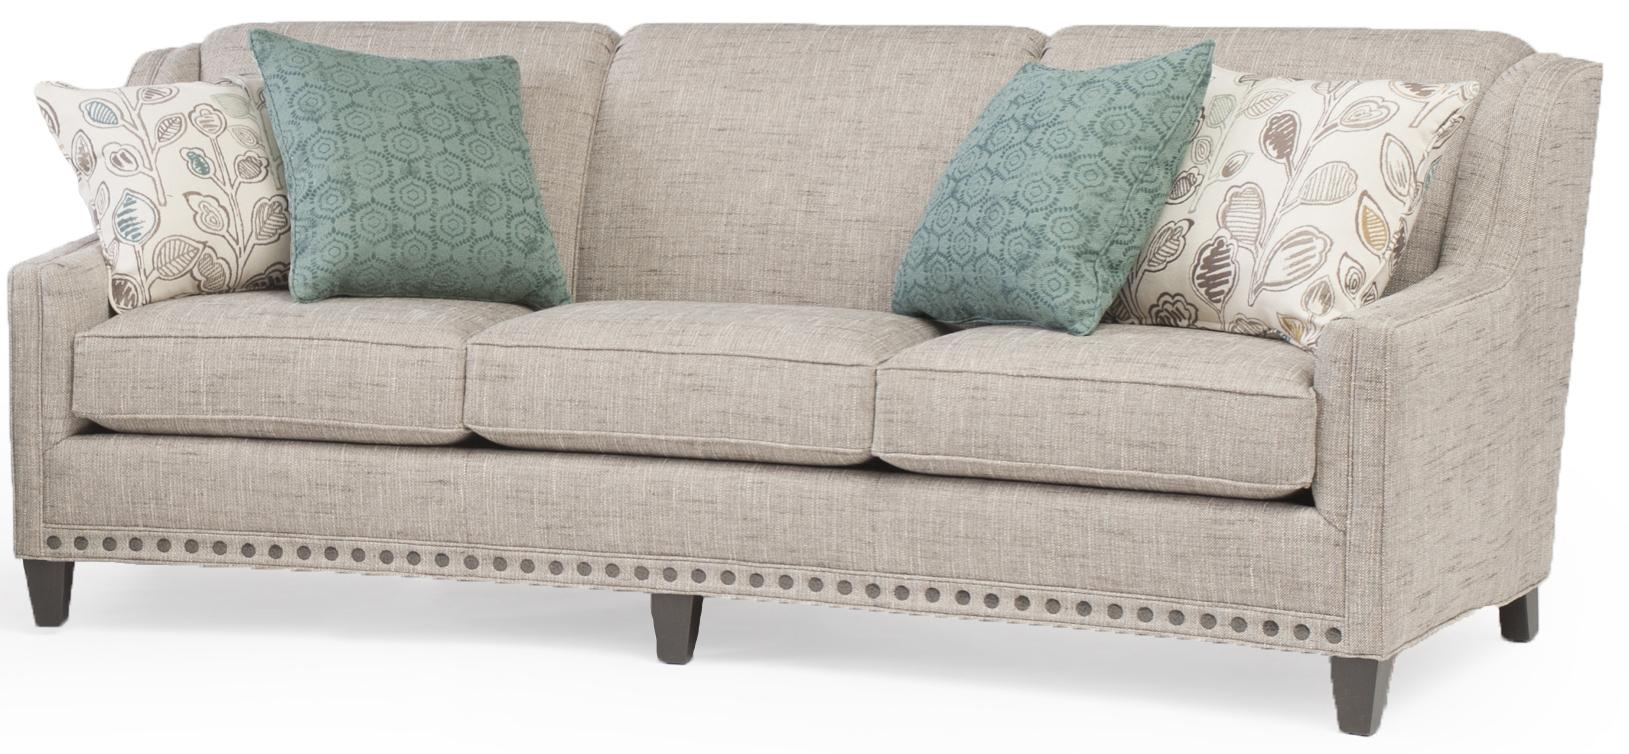 Slightly Curved Sofa With Sloping Track Arms And Nail Head